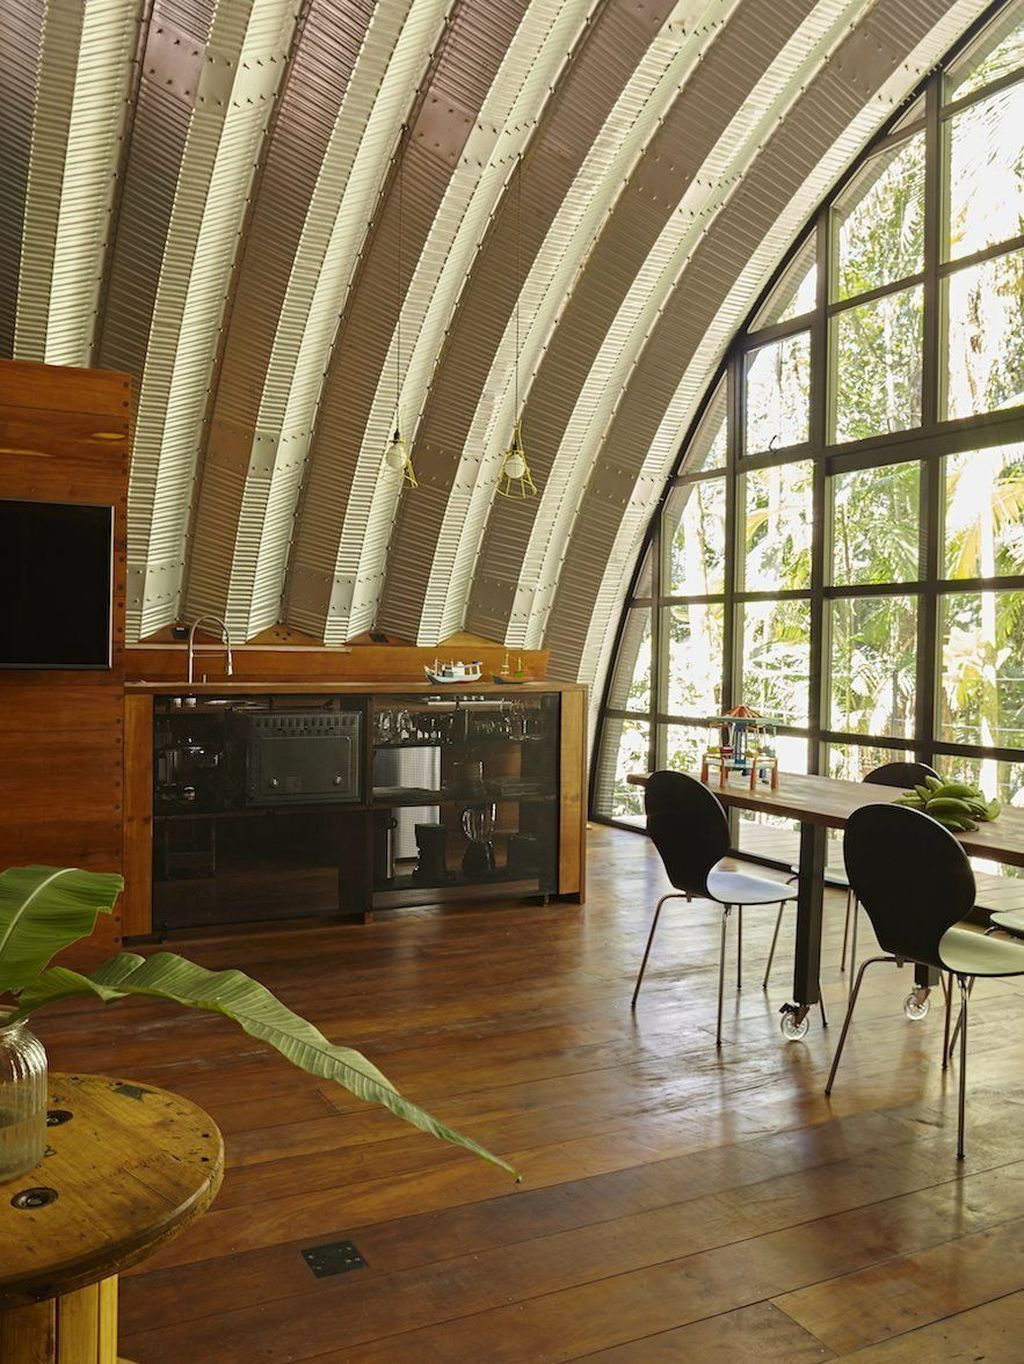 32 Awesome Arched Cabins Interior And Exterior Design Ideas Quonset Hut Homes Arched Cabin Metal Building Homes